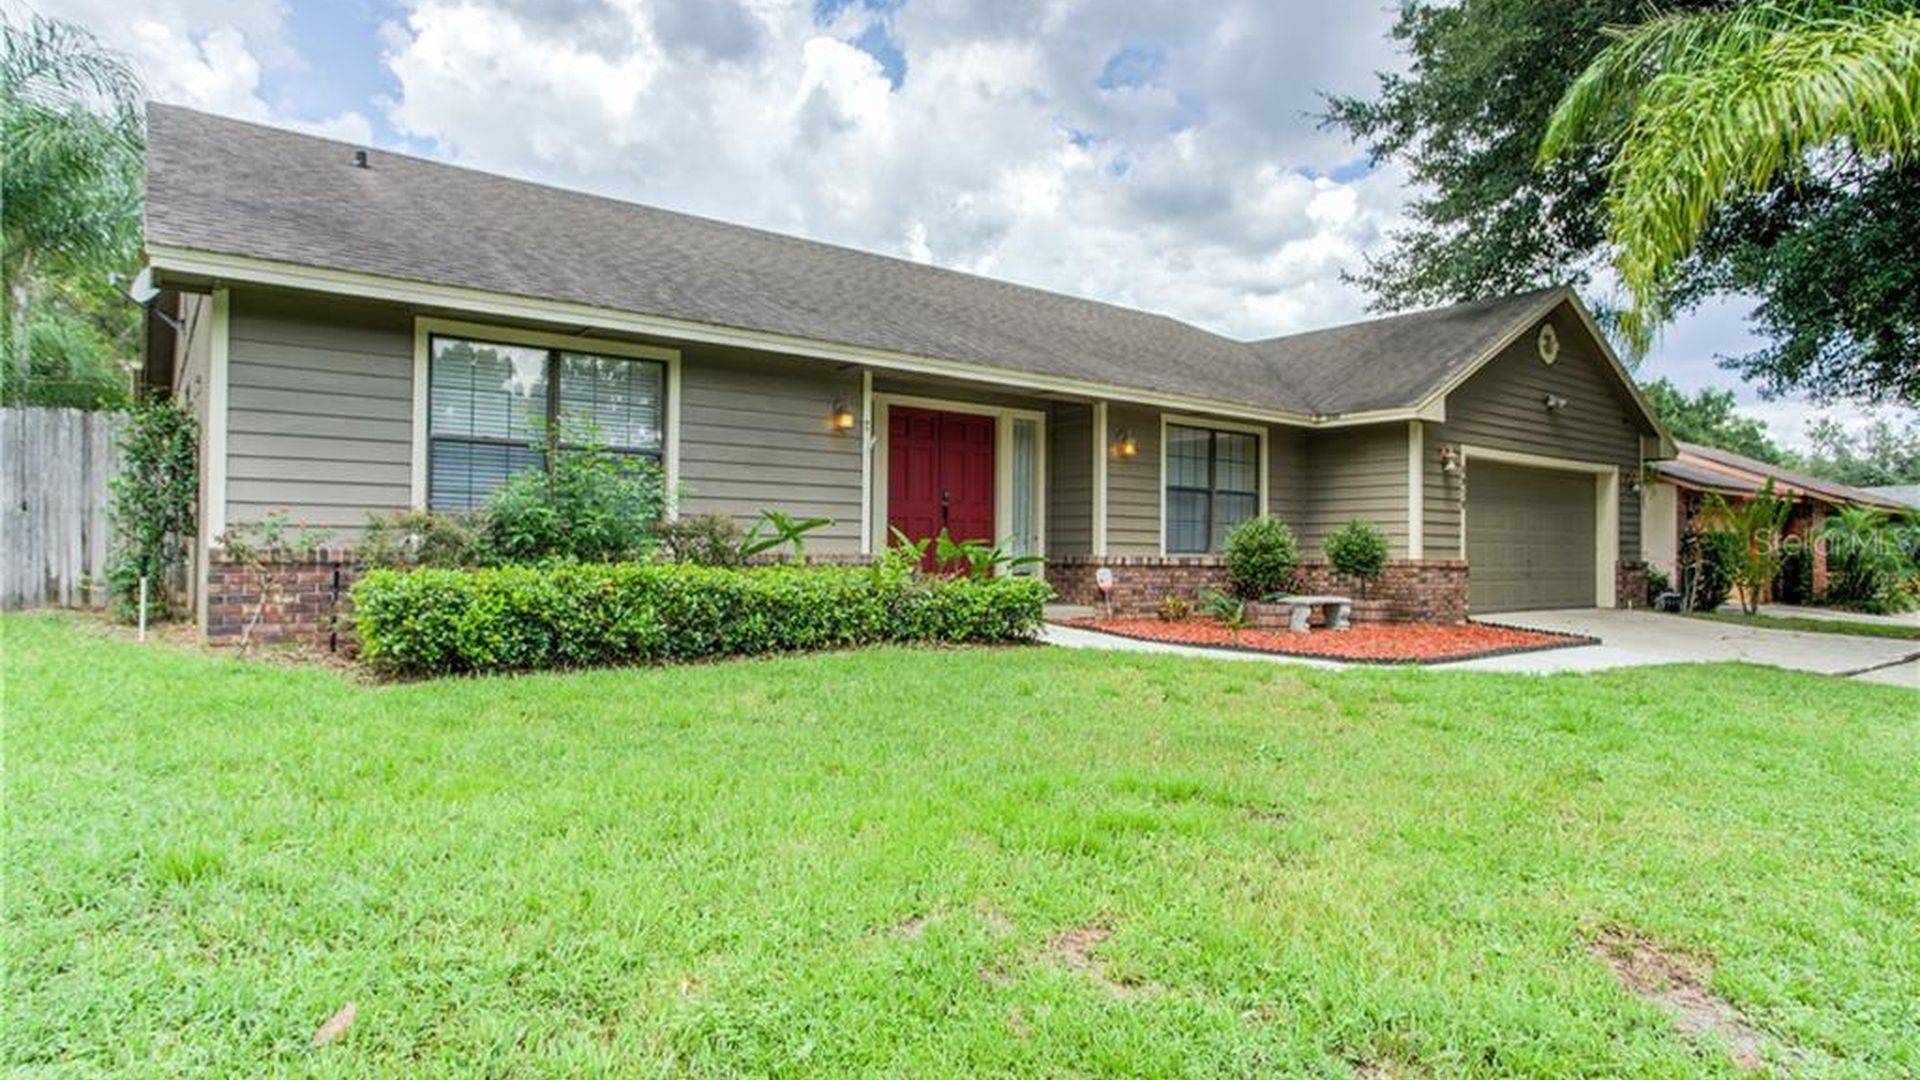 32818 Real Estate - 32818 Homes For Sale | Zillow